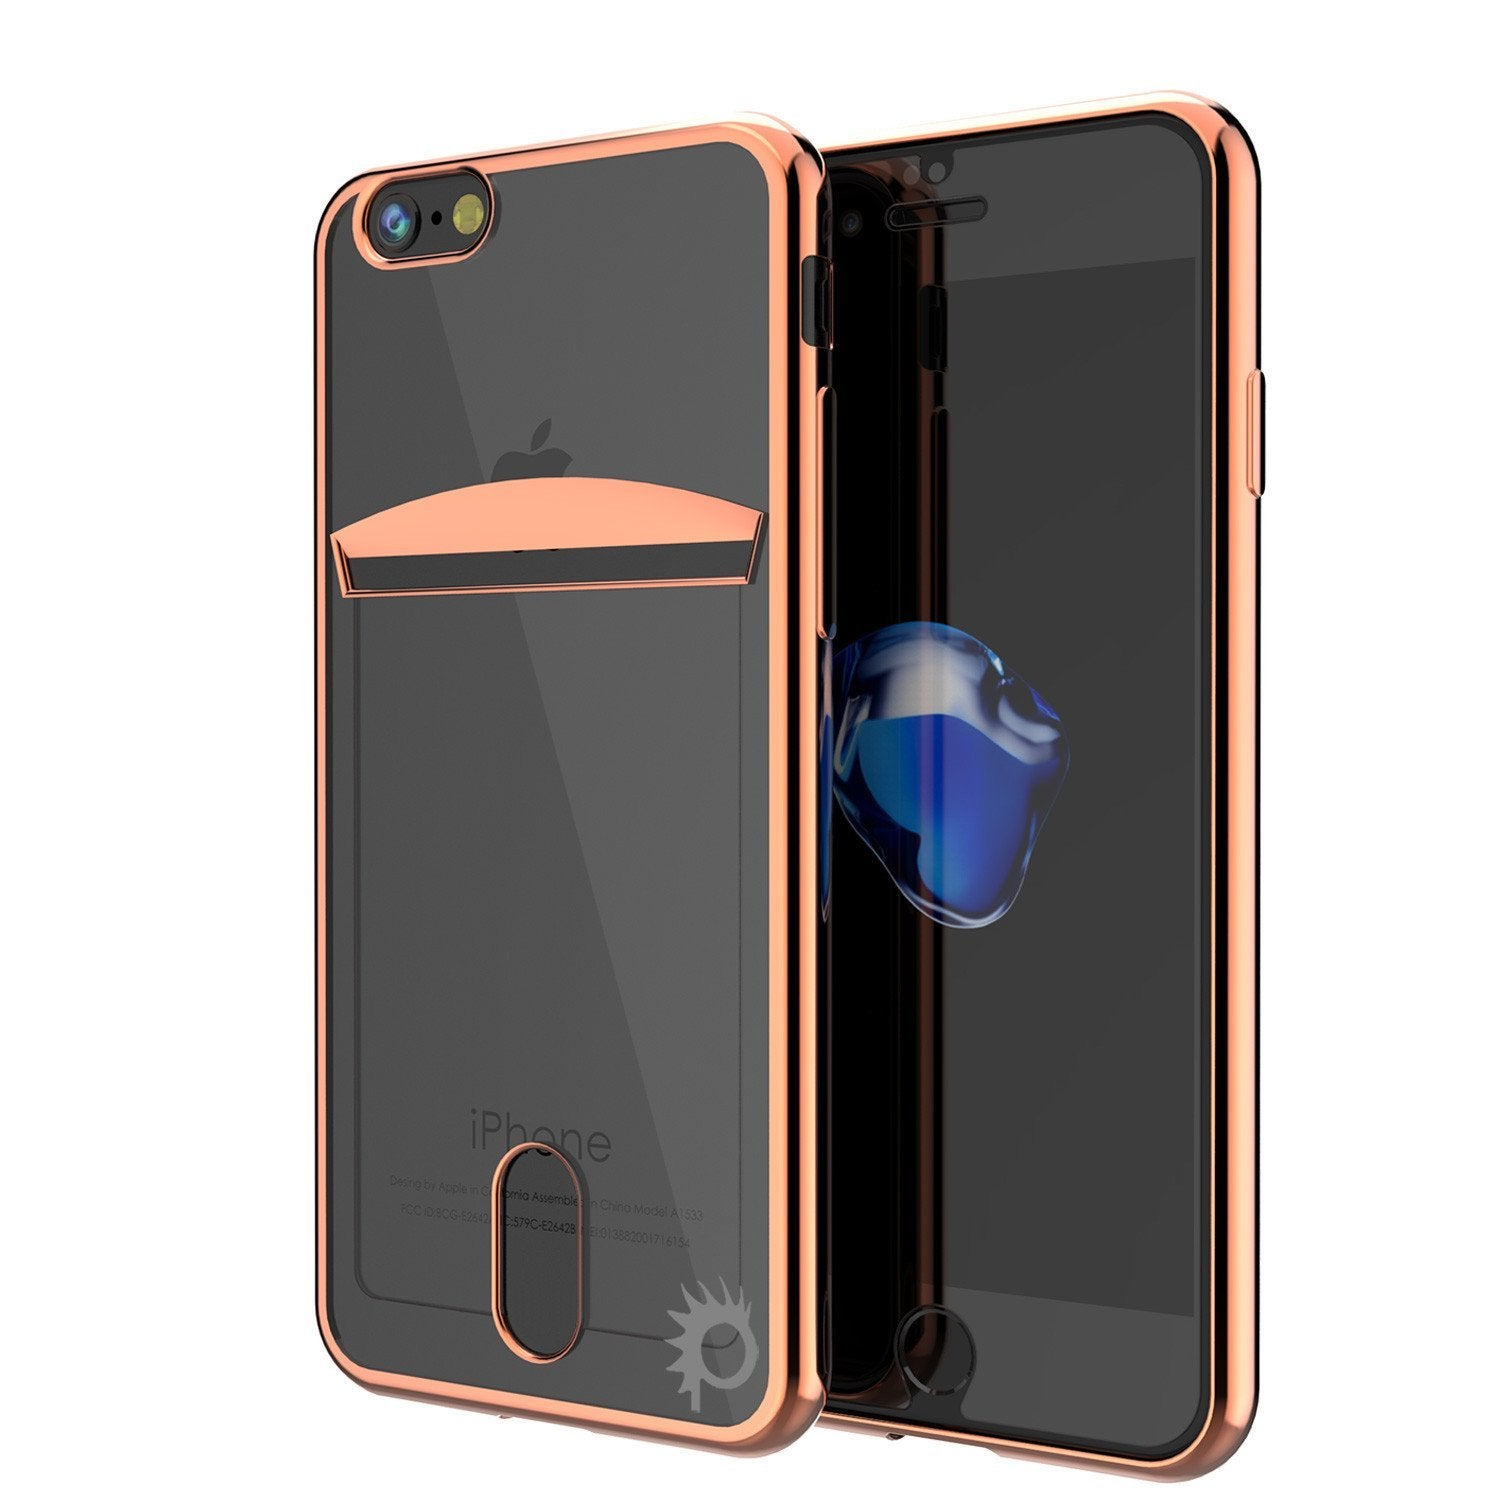 iPhone 8+ Plus Case, PUNKCASE® LUCID Rose Gold Series | Card Slot | SHIELD Screen Protector